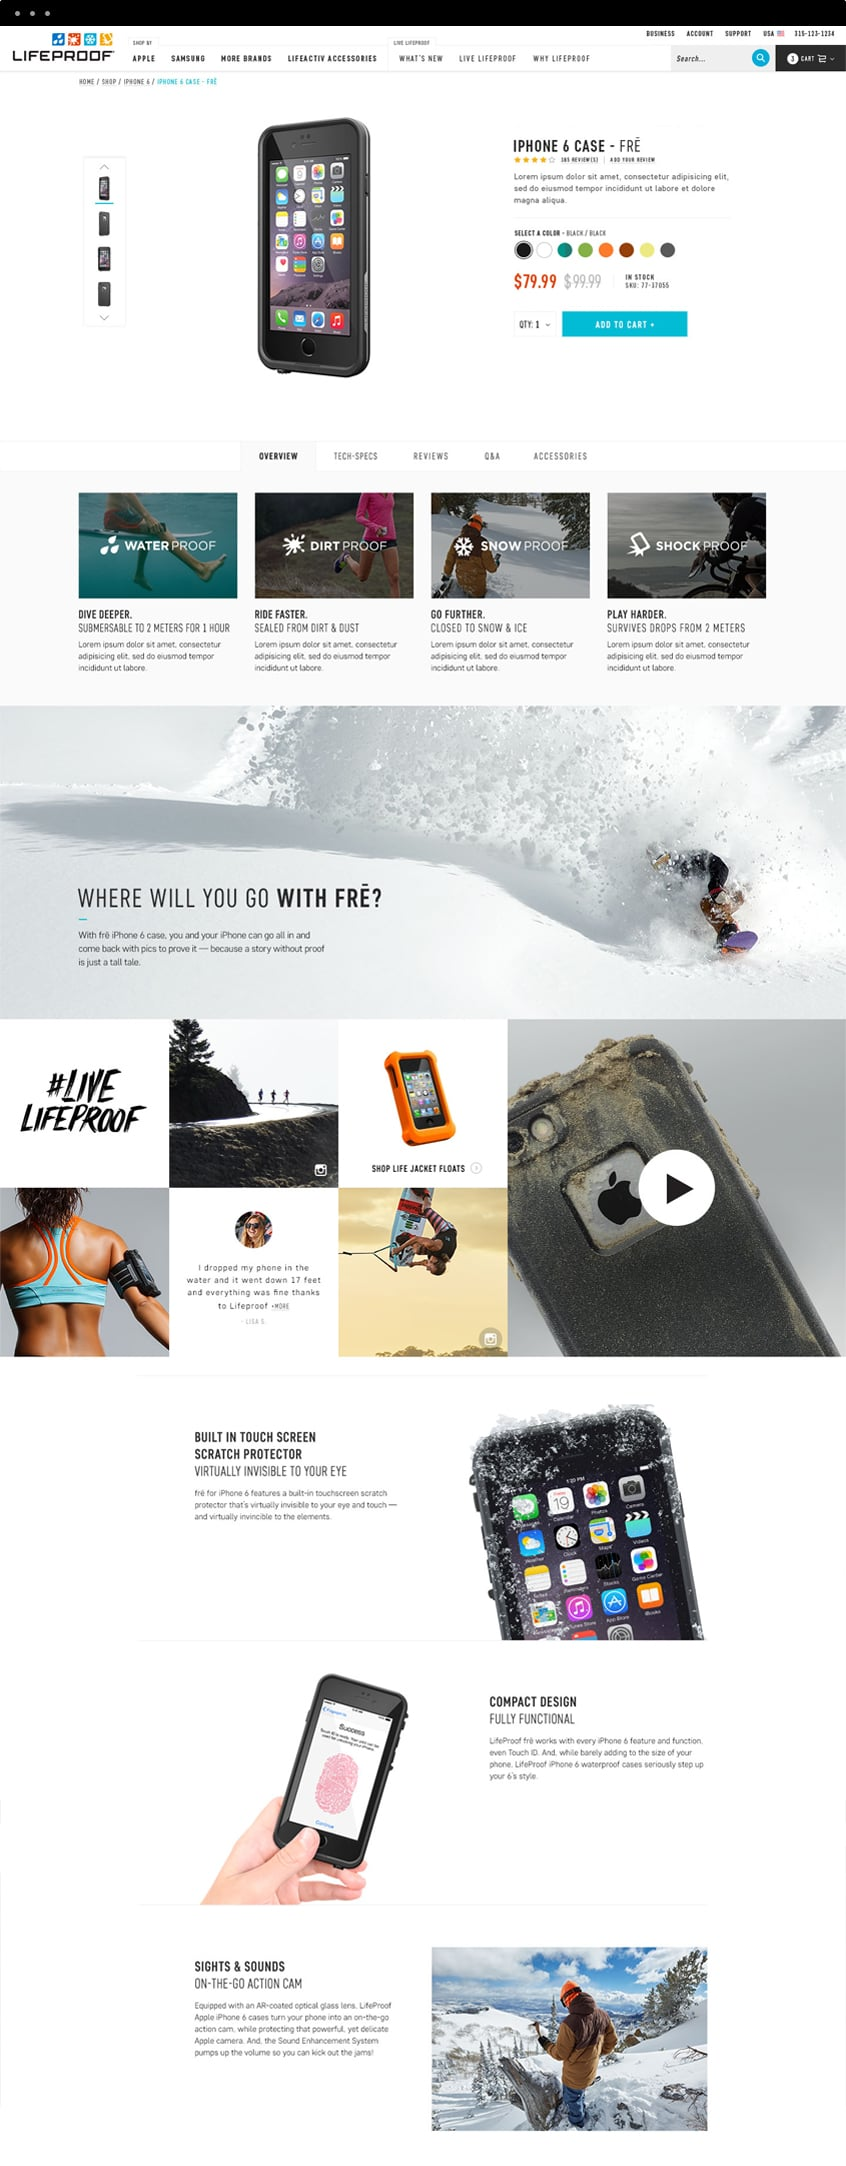 Lifeproof Product Detail Page